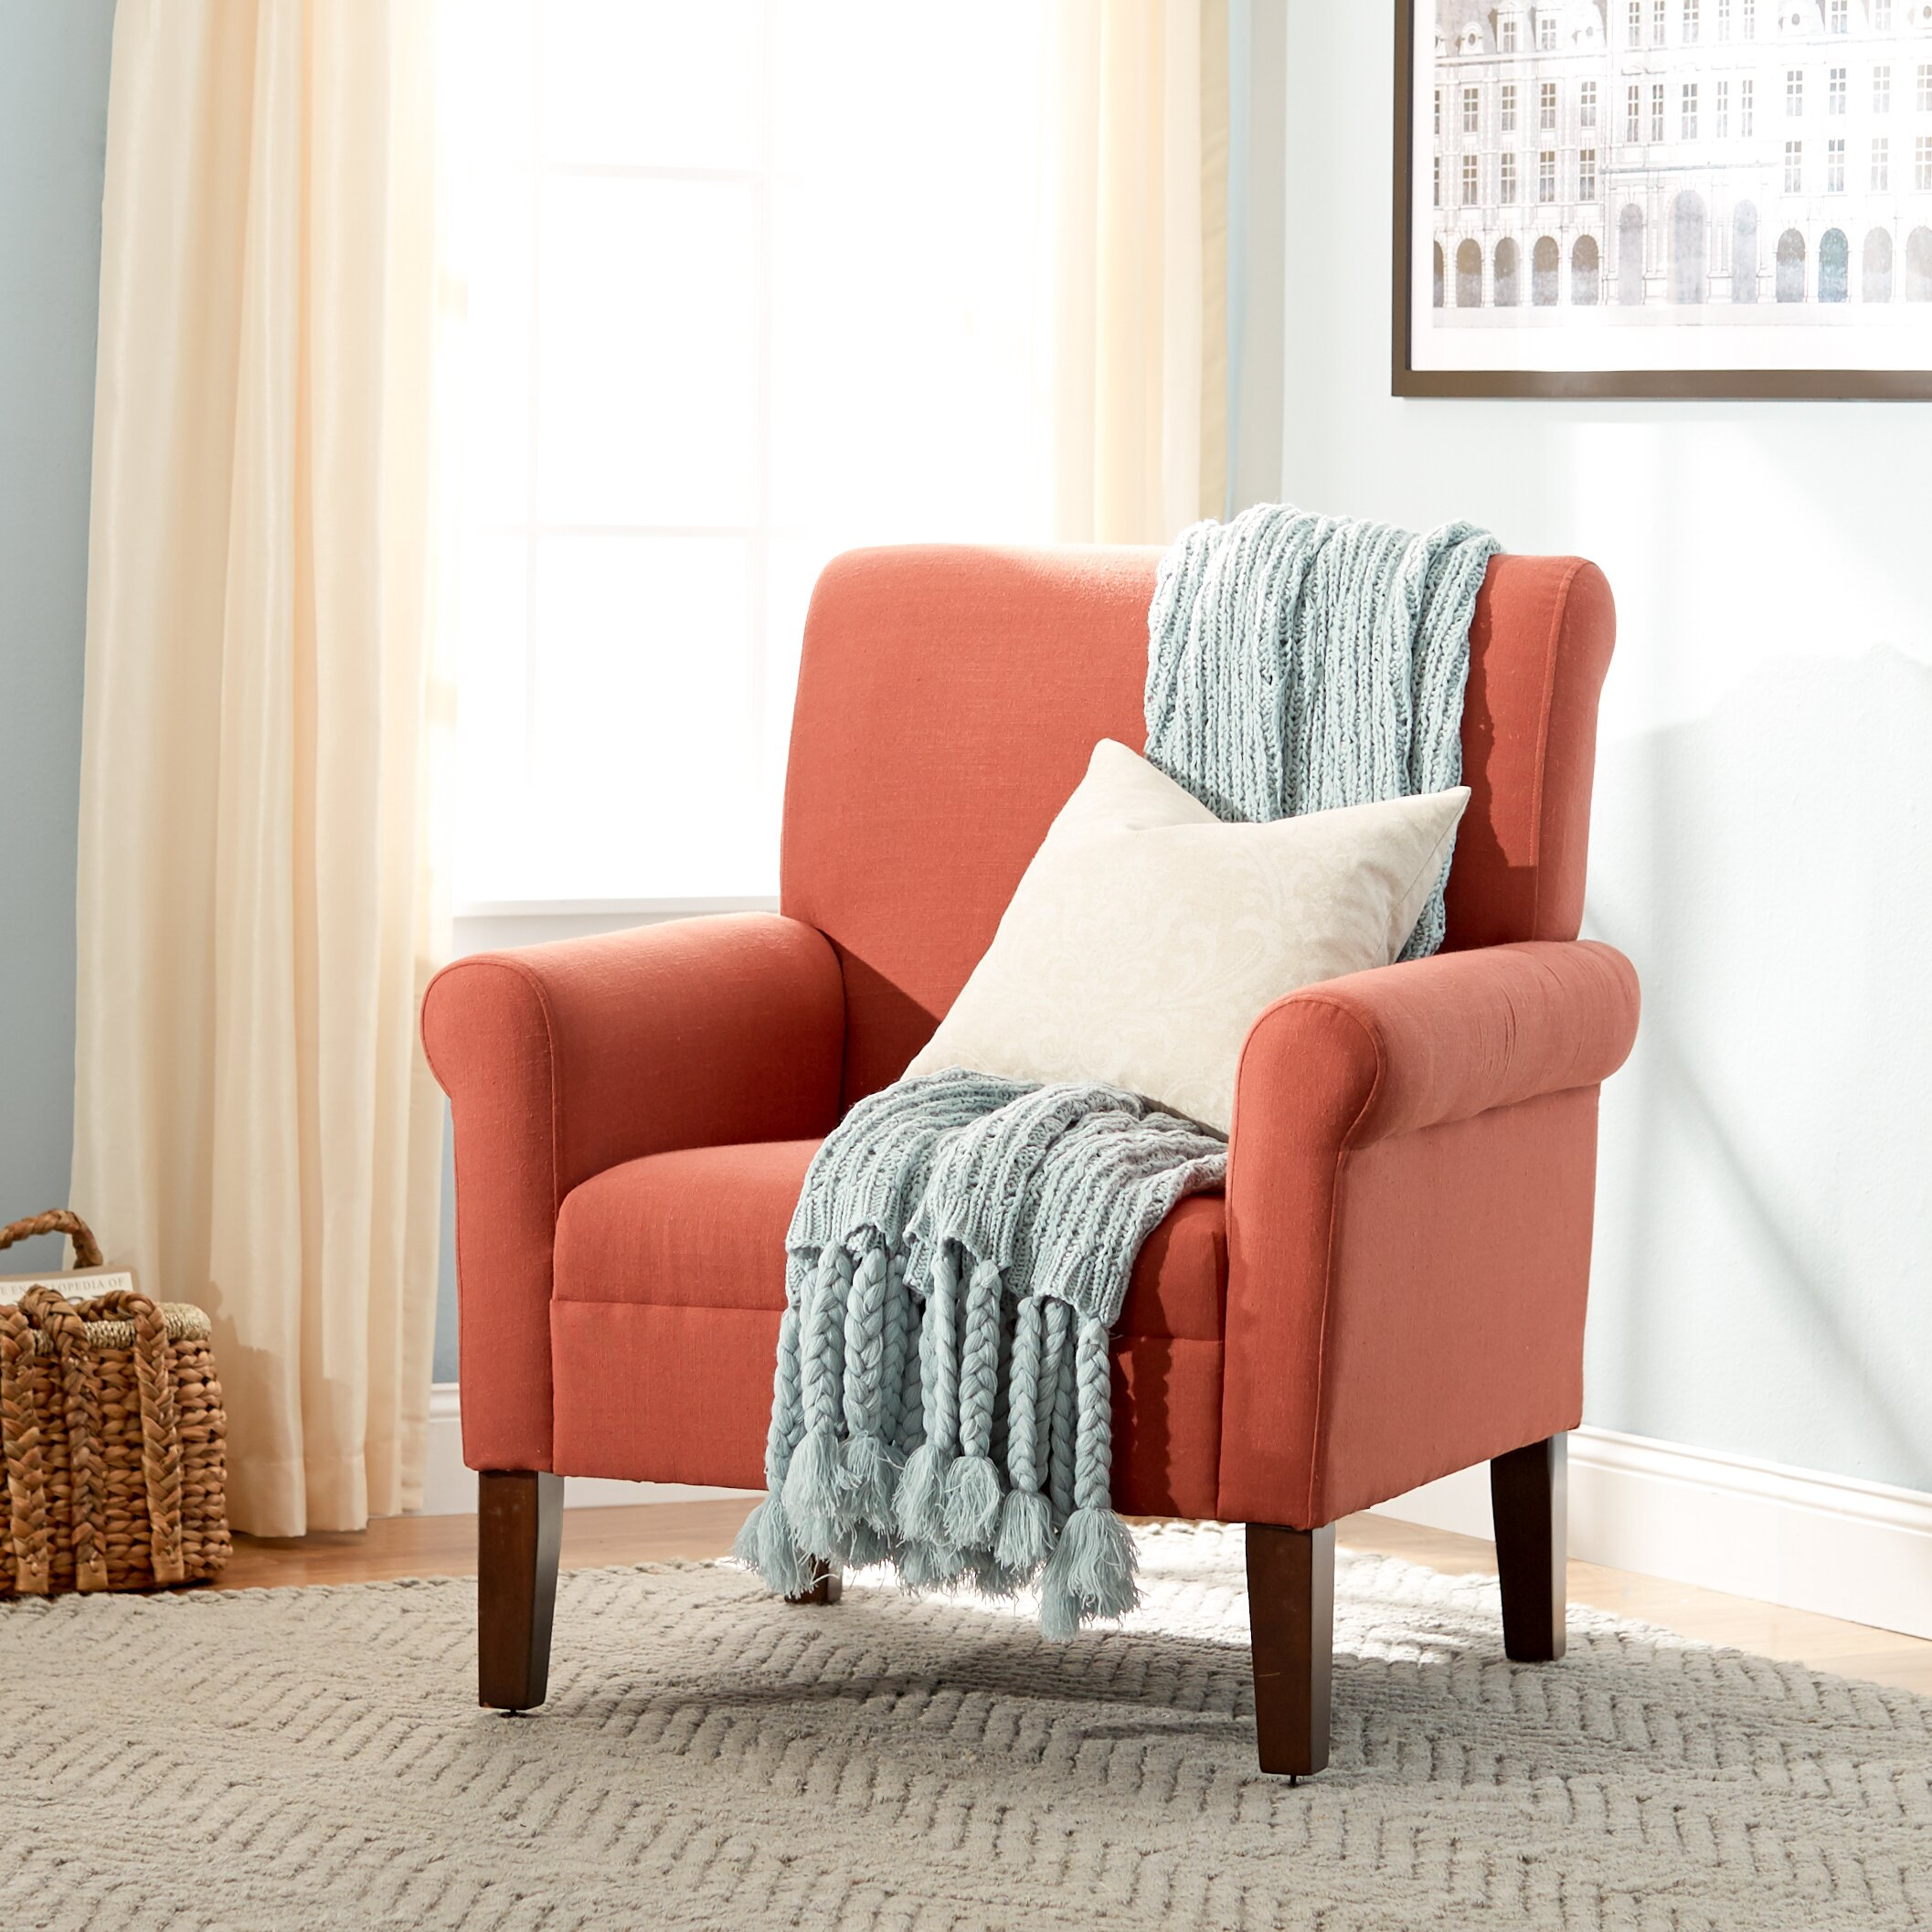 Red Accent Chair With White Throw Blanket: Willrich Arm Chair